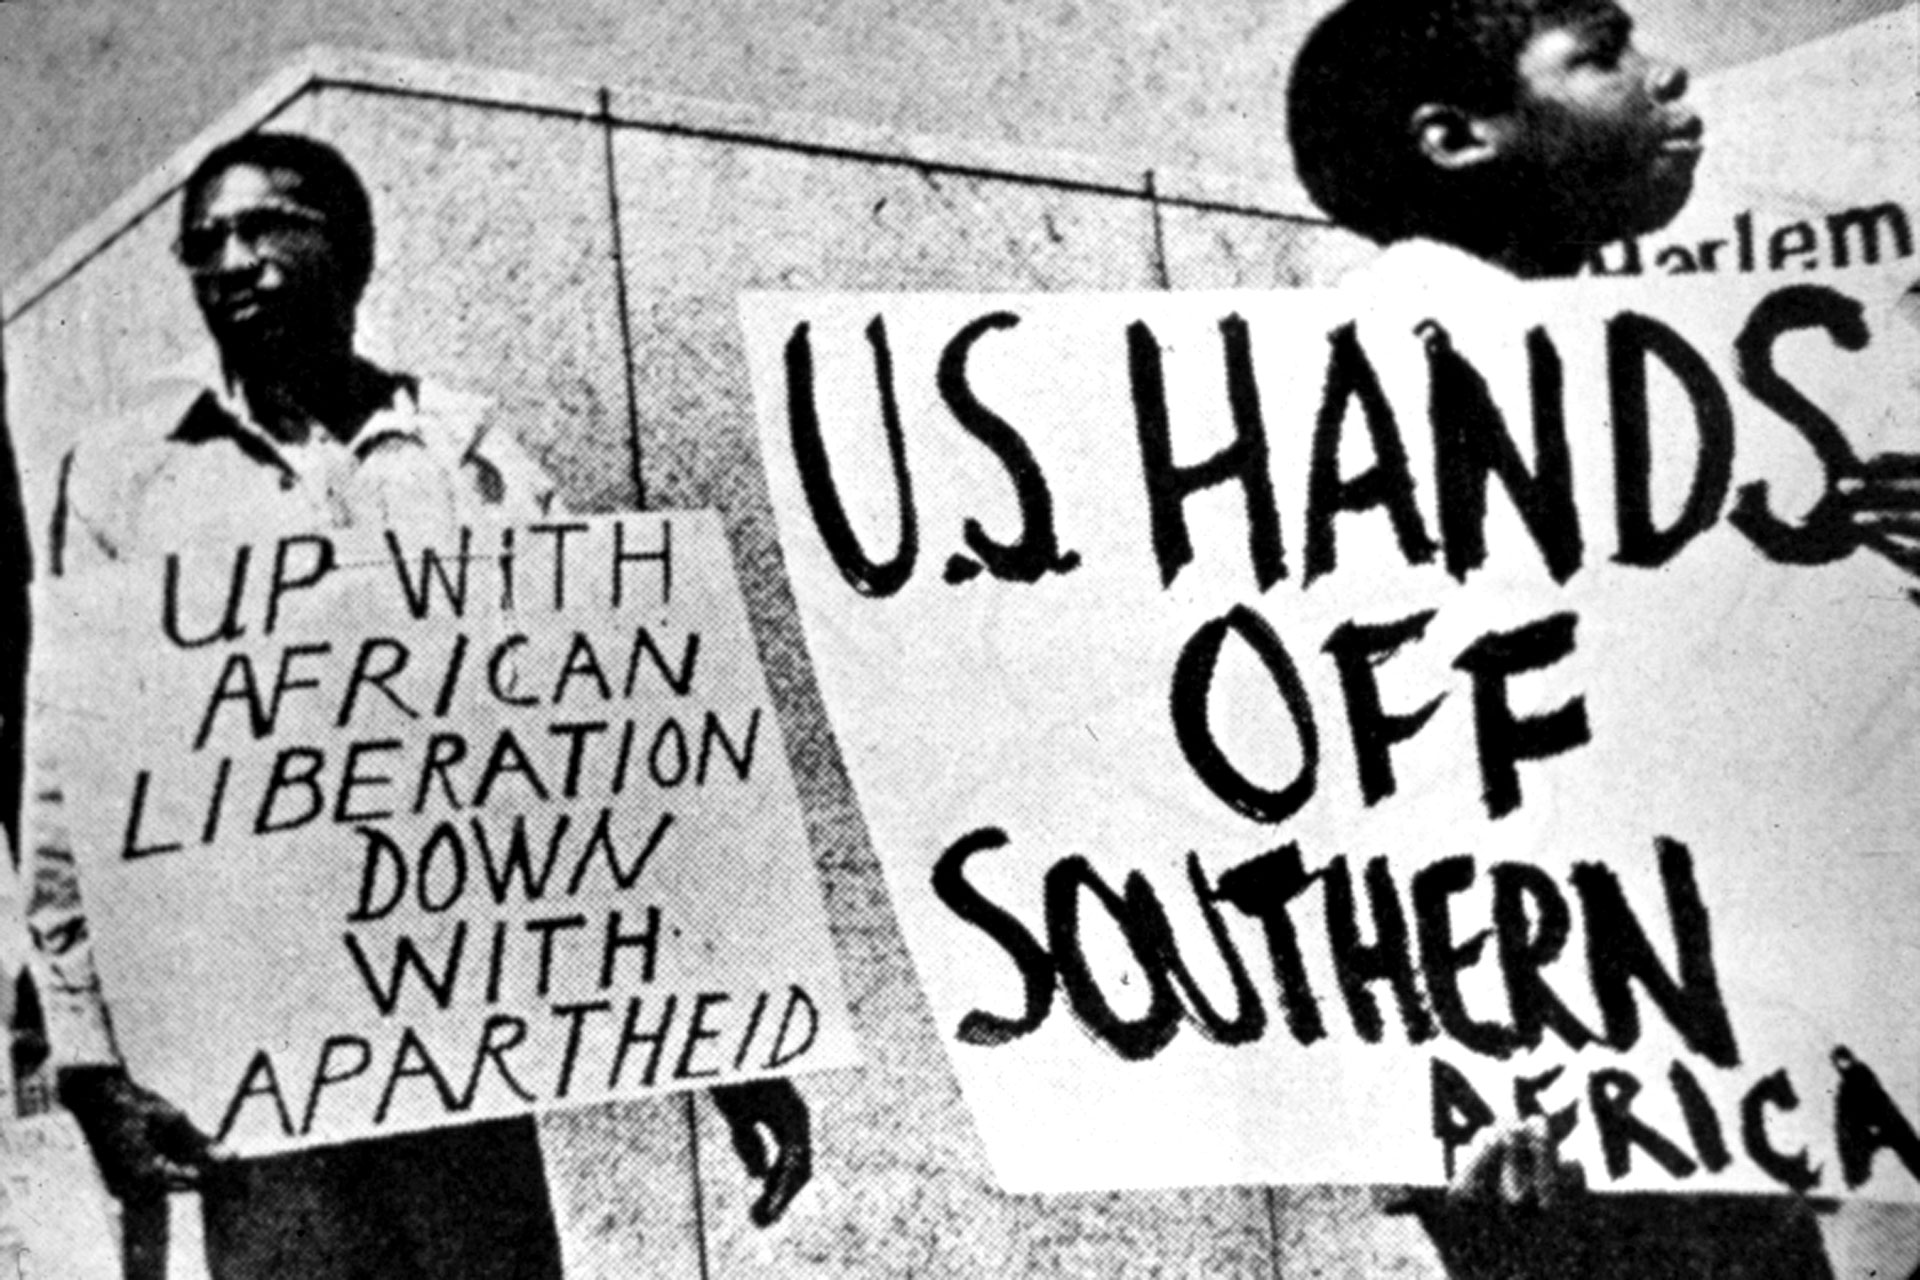 Anti-apartheid rally in Harlem   Photo: source unknown